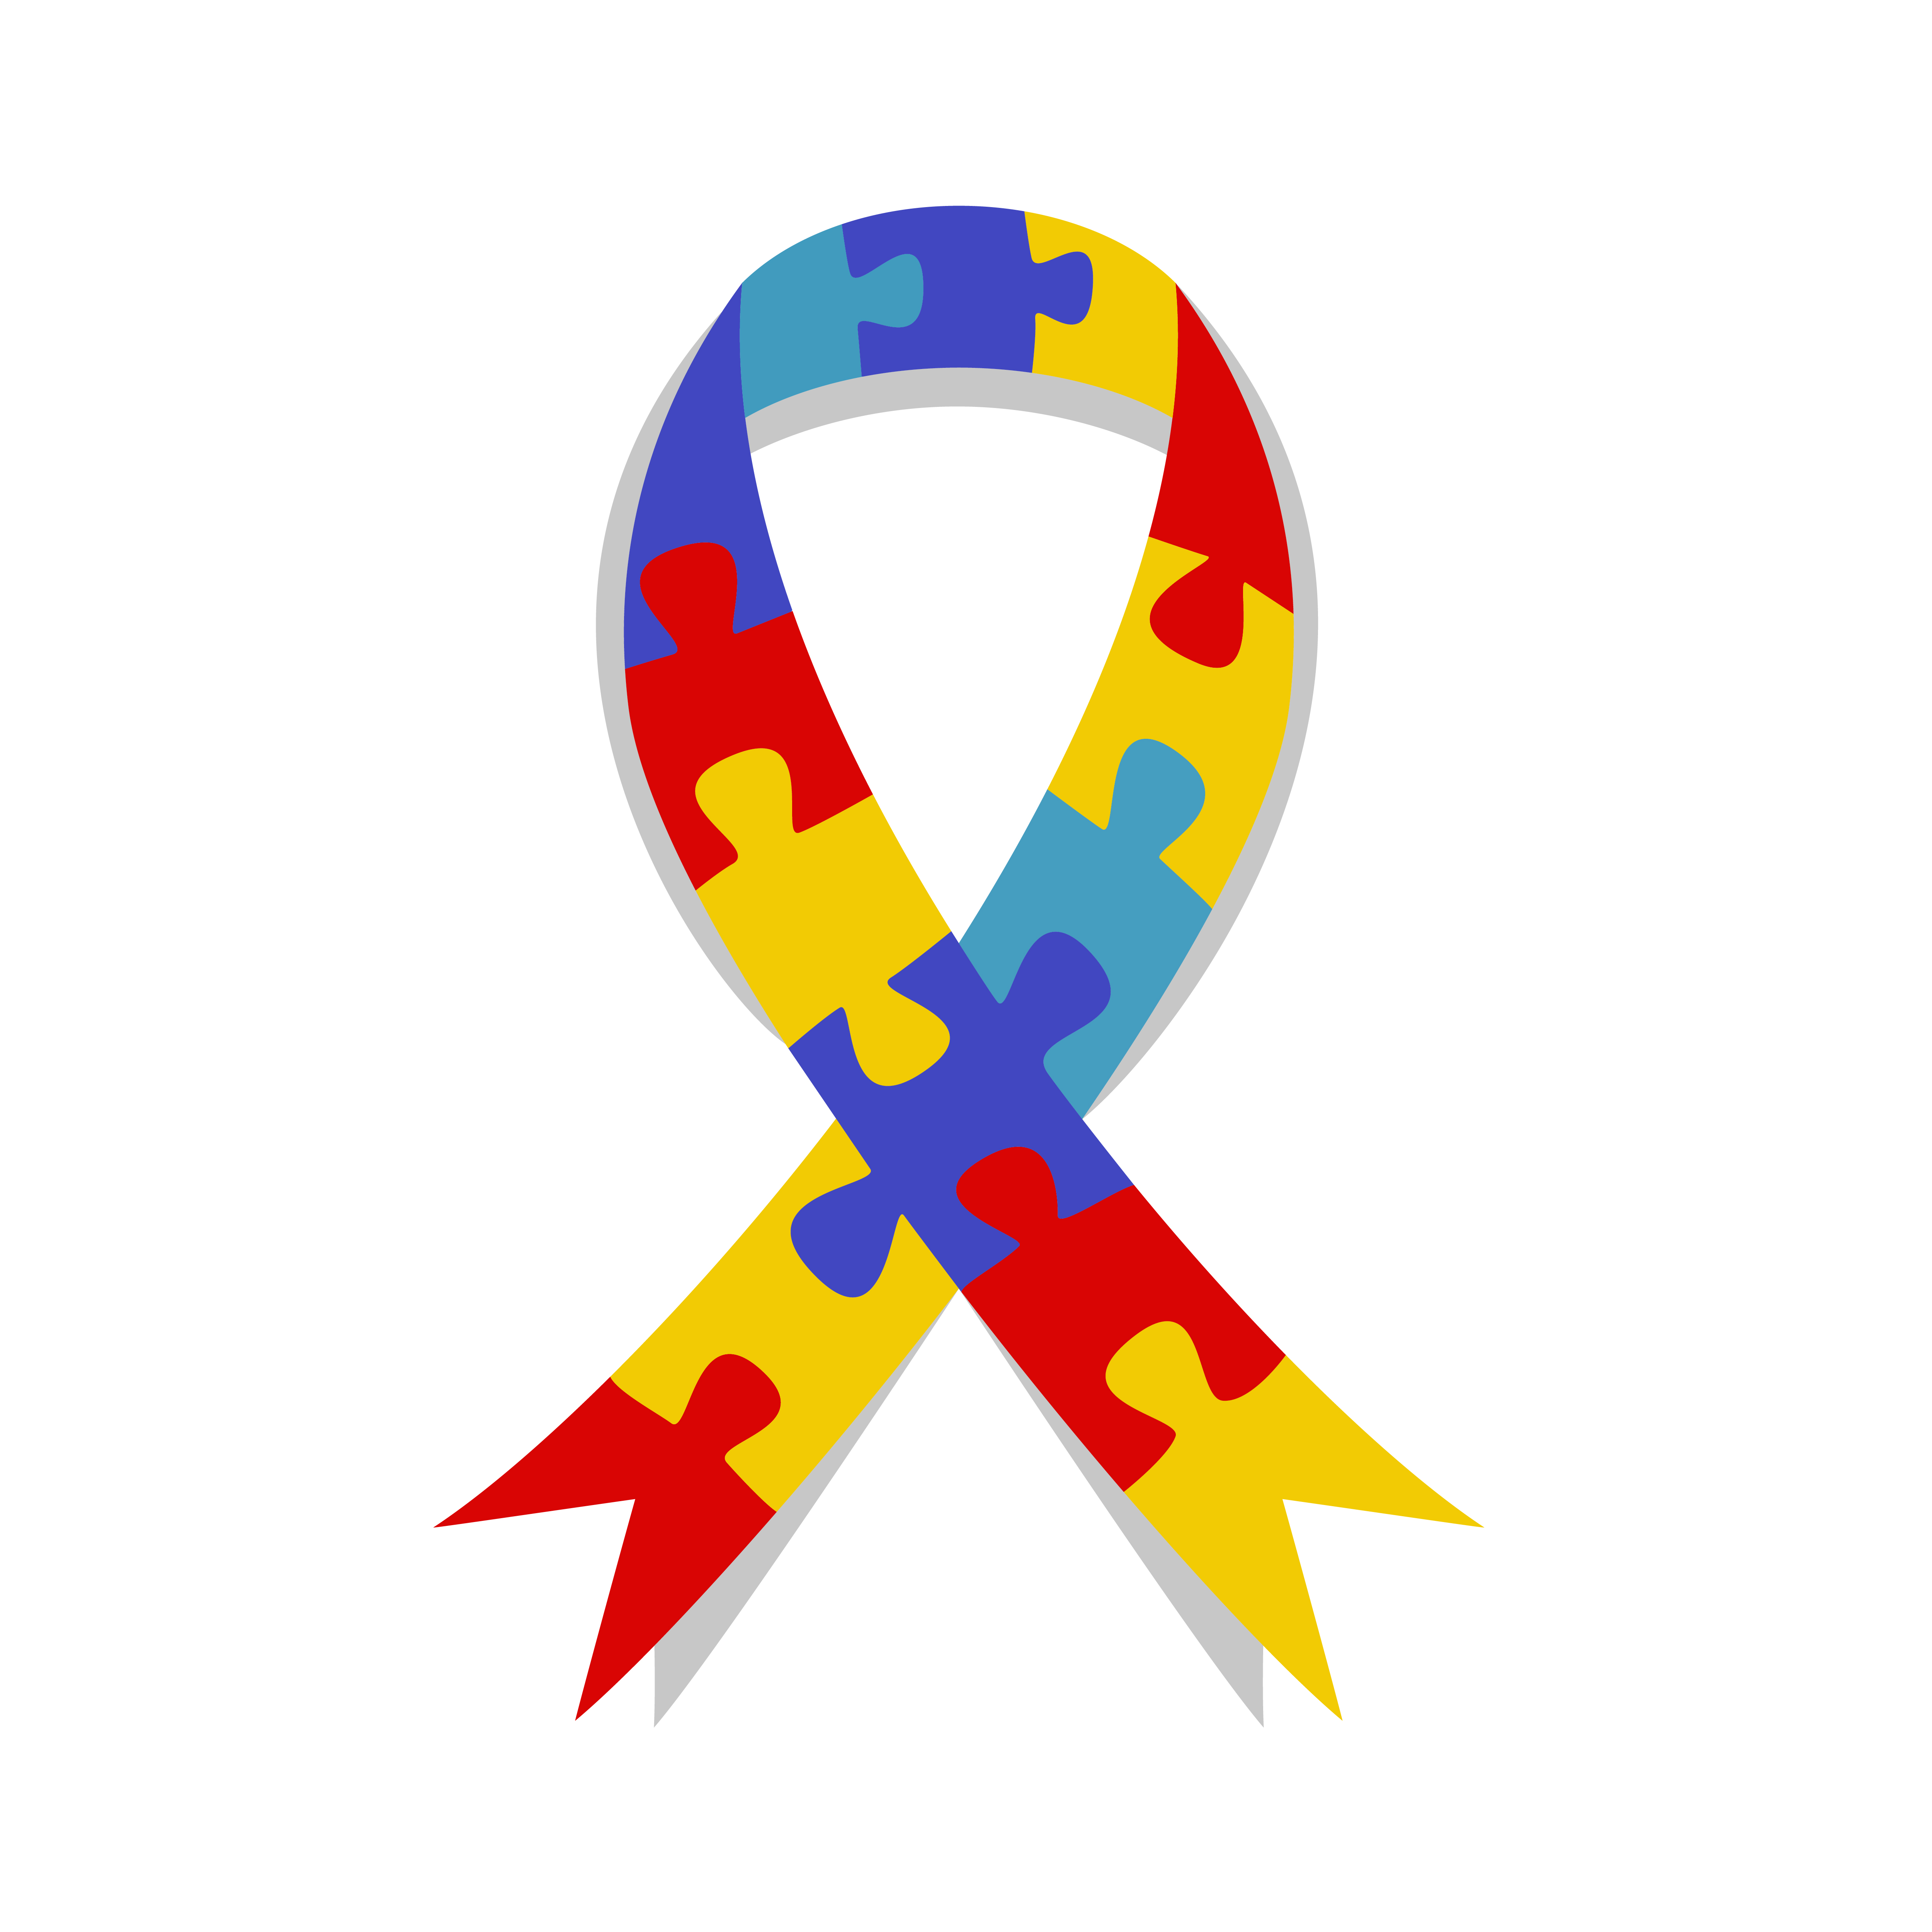 April is month here. Autism clipart social awareness